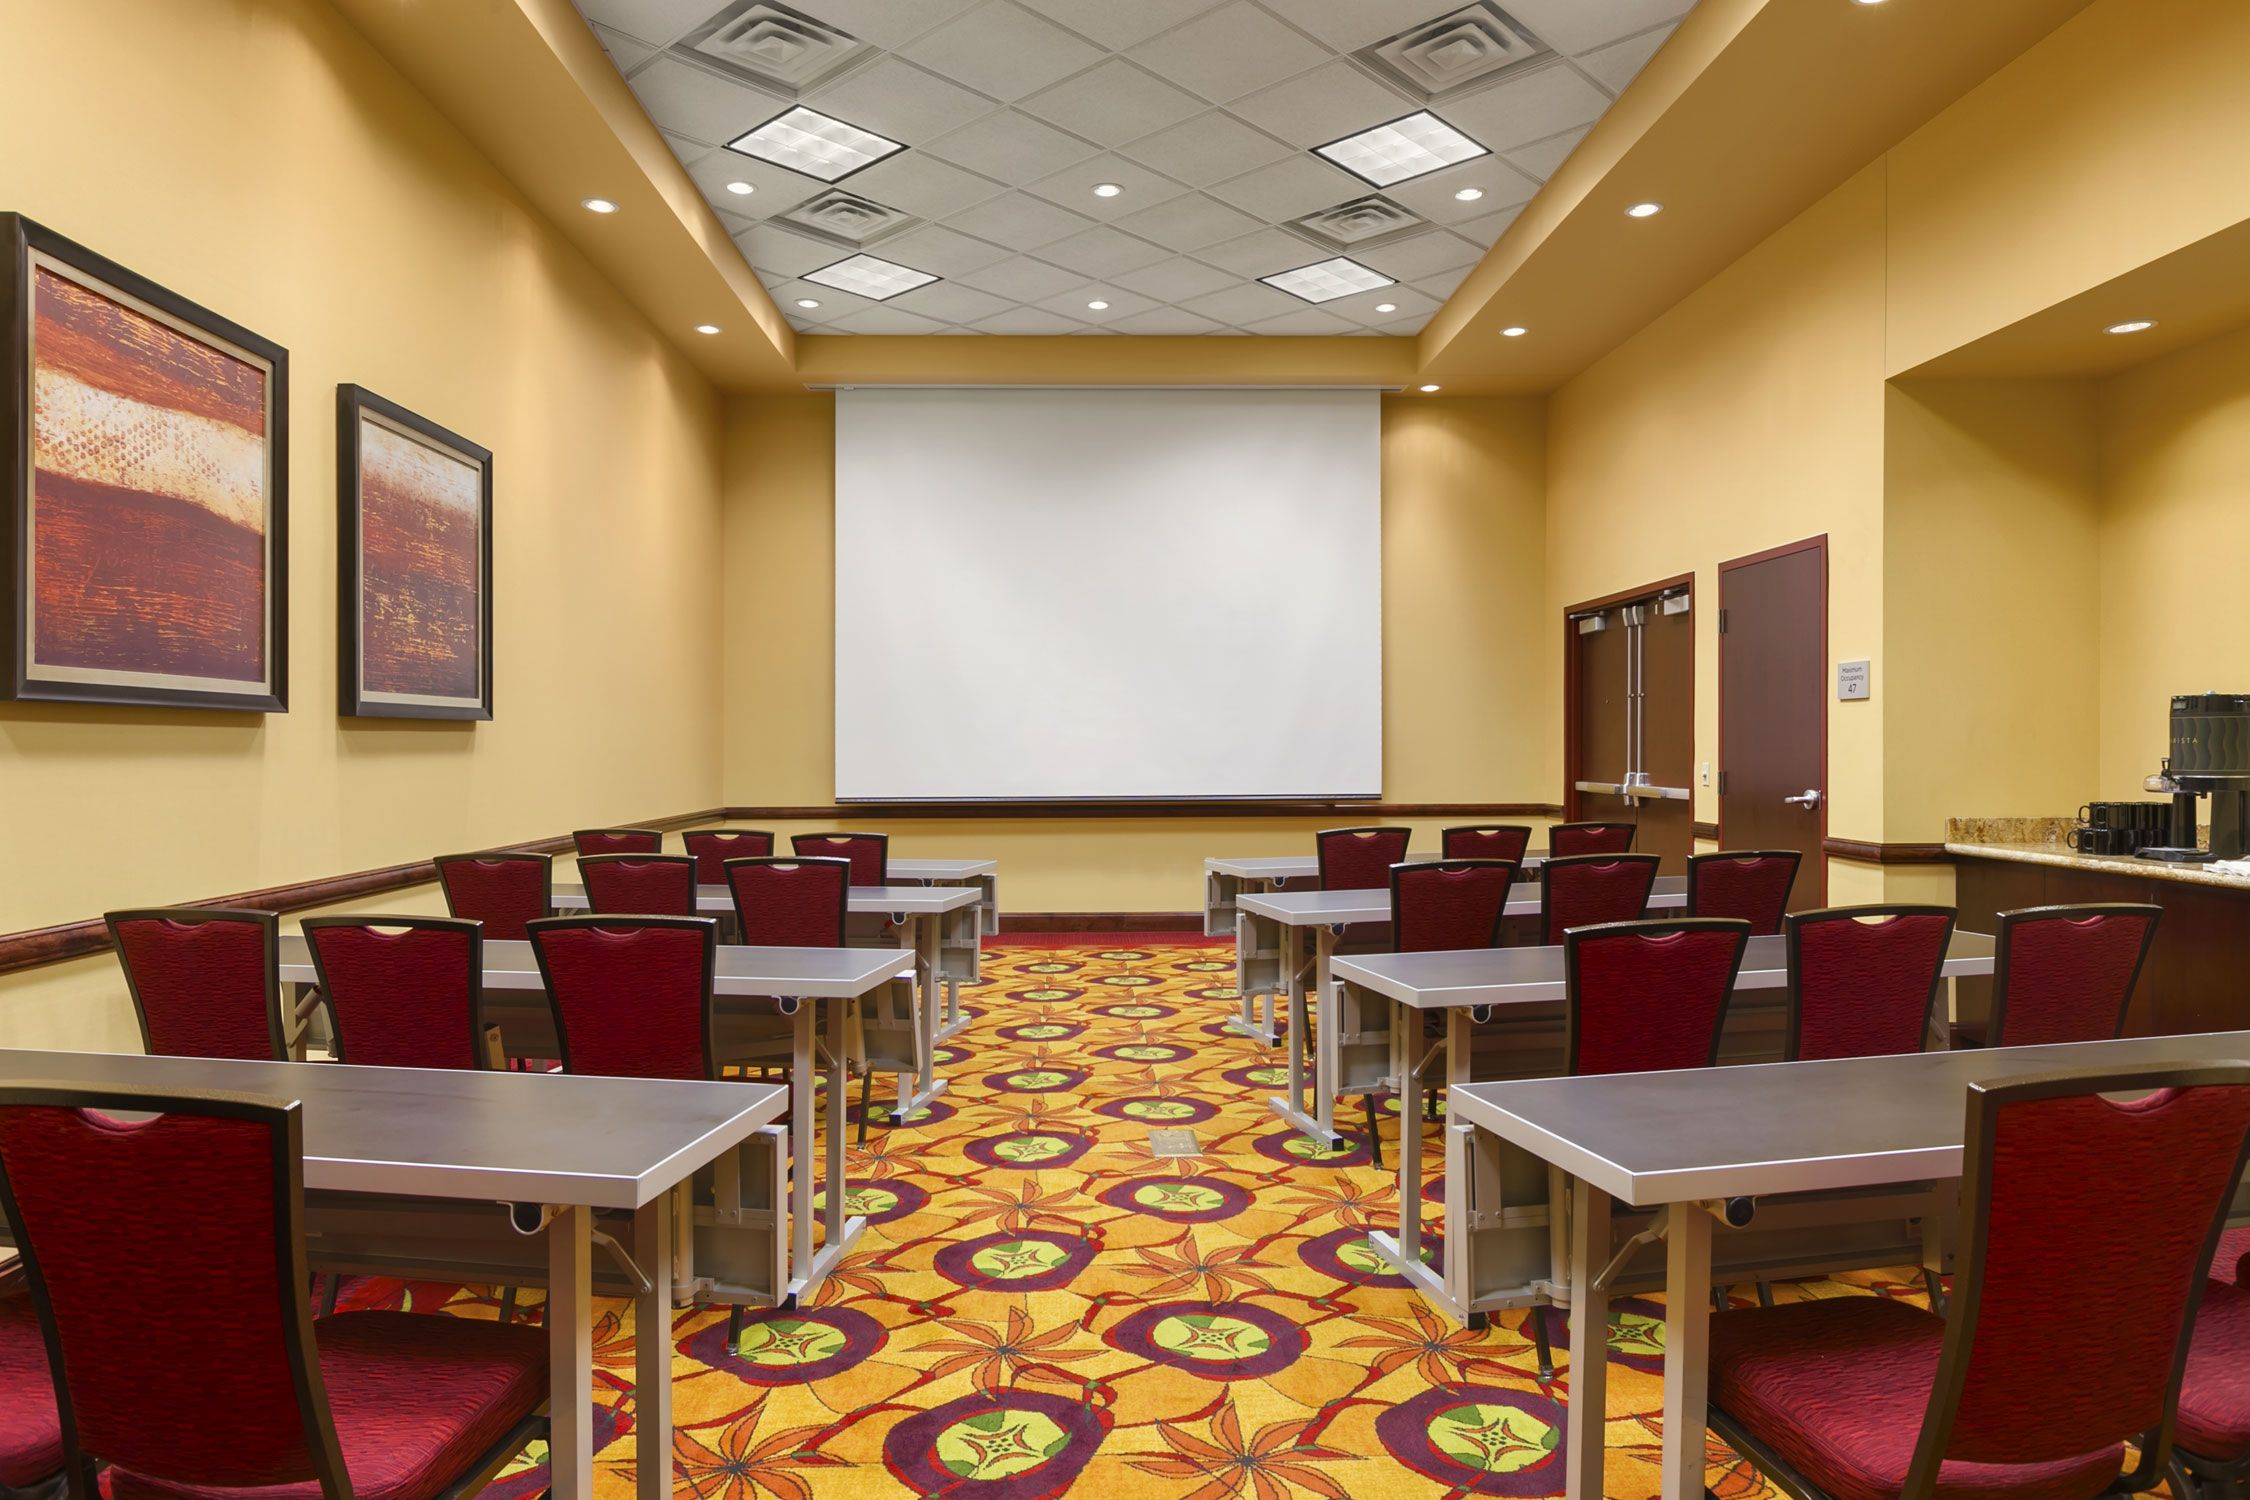 Courtyard I is pre-set as a classroom and can hold up to 24 people. The space would be the perfect for your next lecture or orientation at the Courtyard by Marriott La Vista !